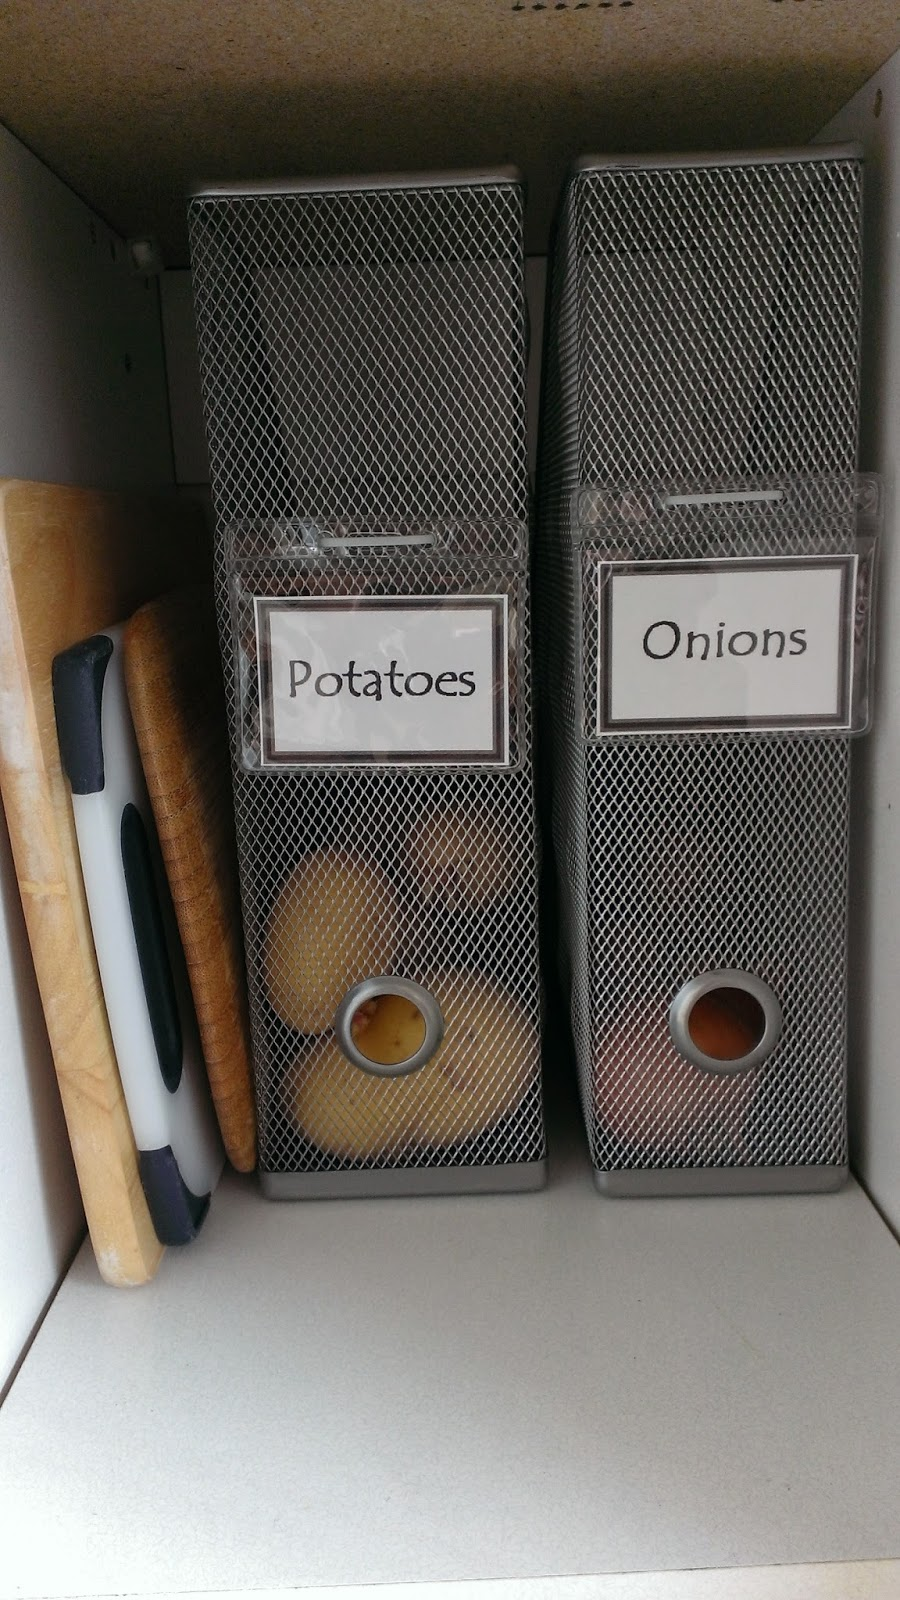 Use magazine holders to keep your onions and potatoes